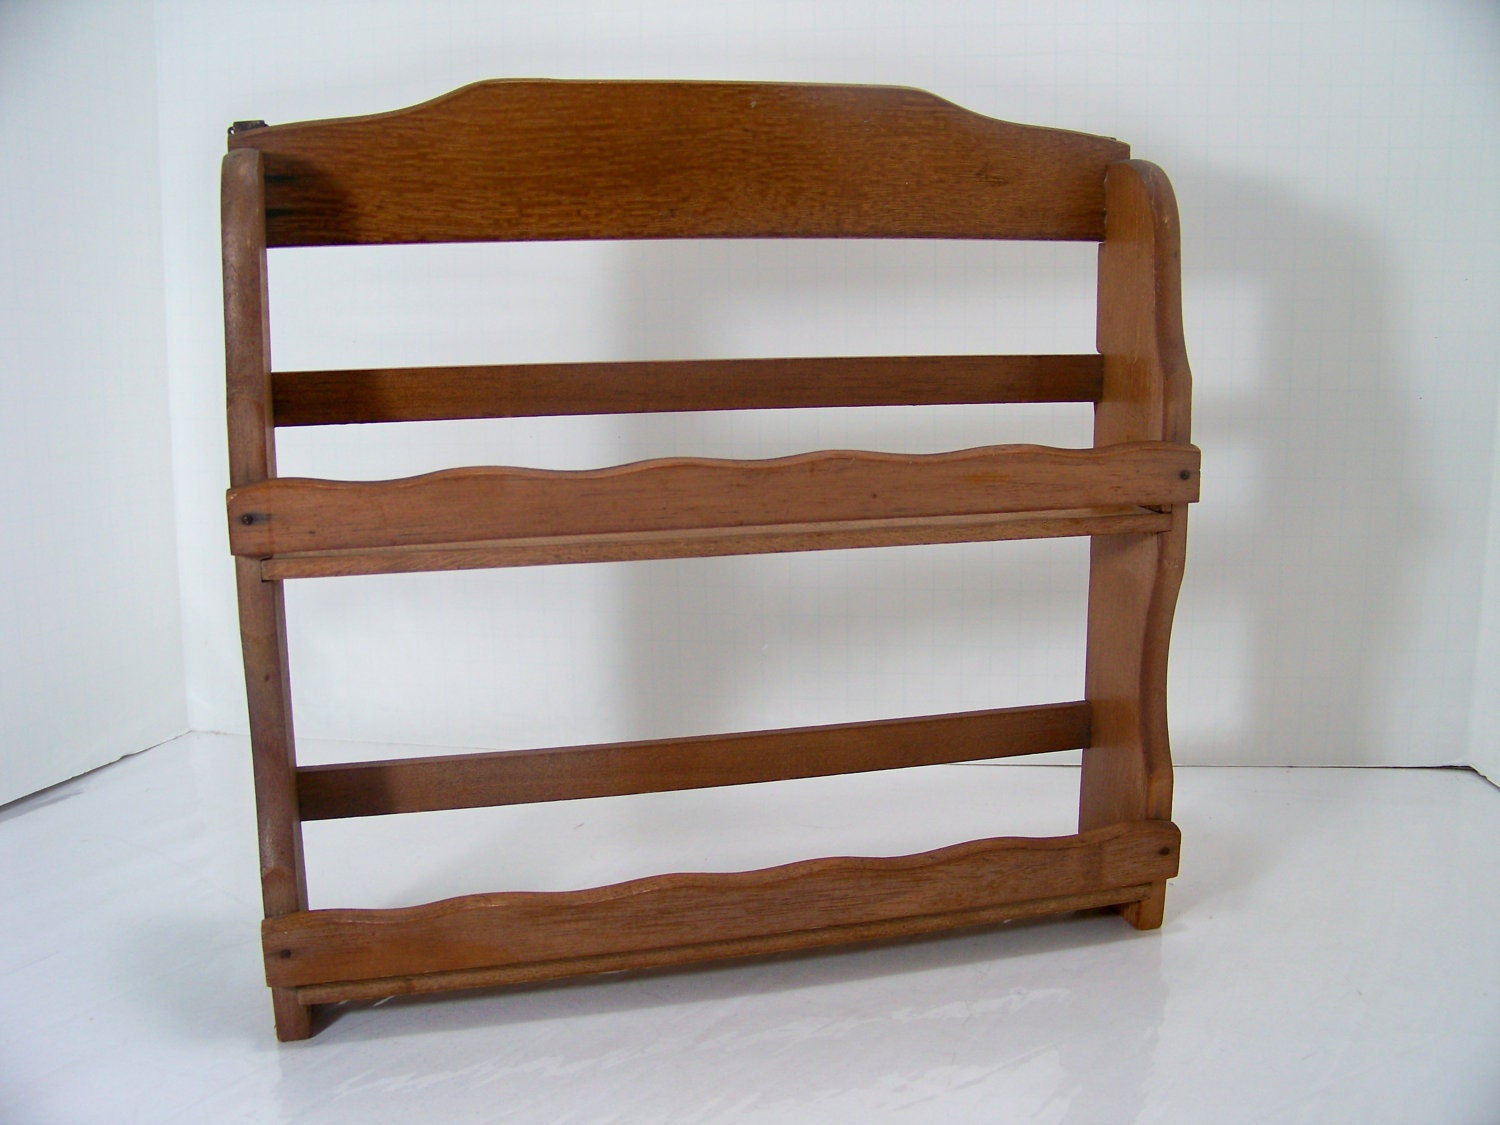 Superb img of Vintage Wood Spice Rack Kitchen Shelf by SmakBoutique on Etsy with #432414 color and 1500x1125 pixels